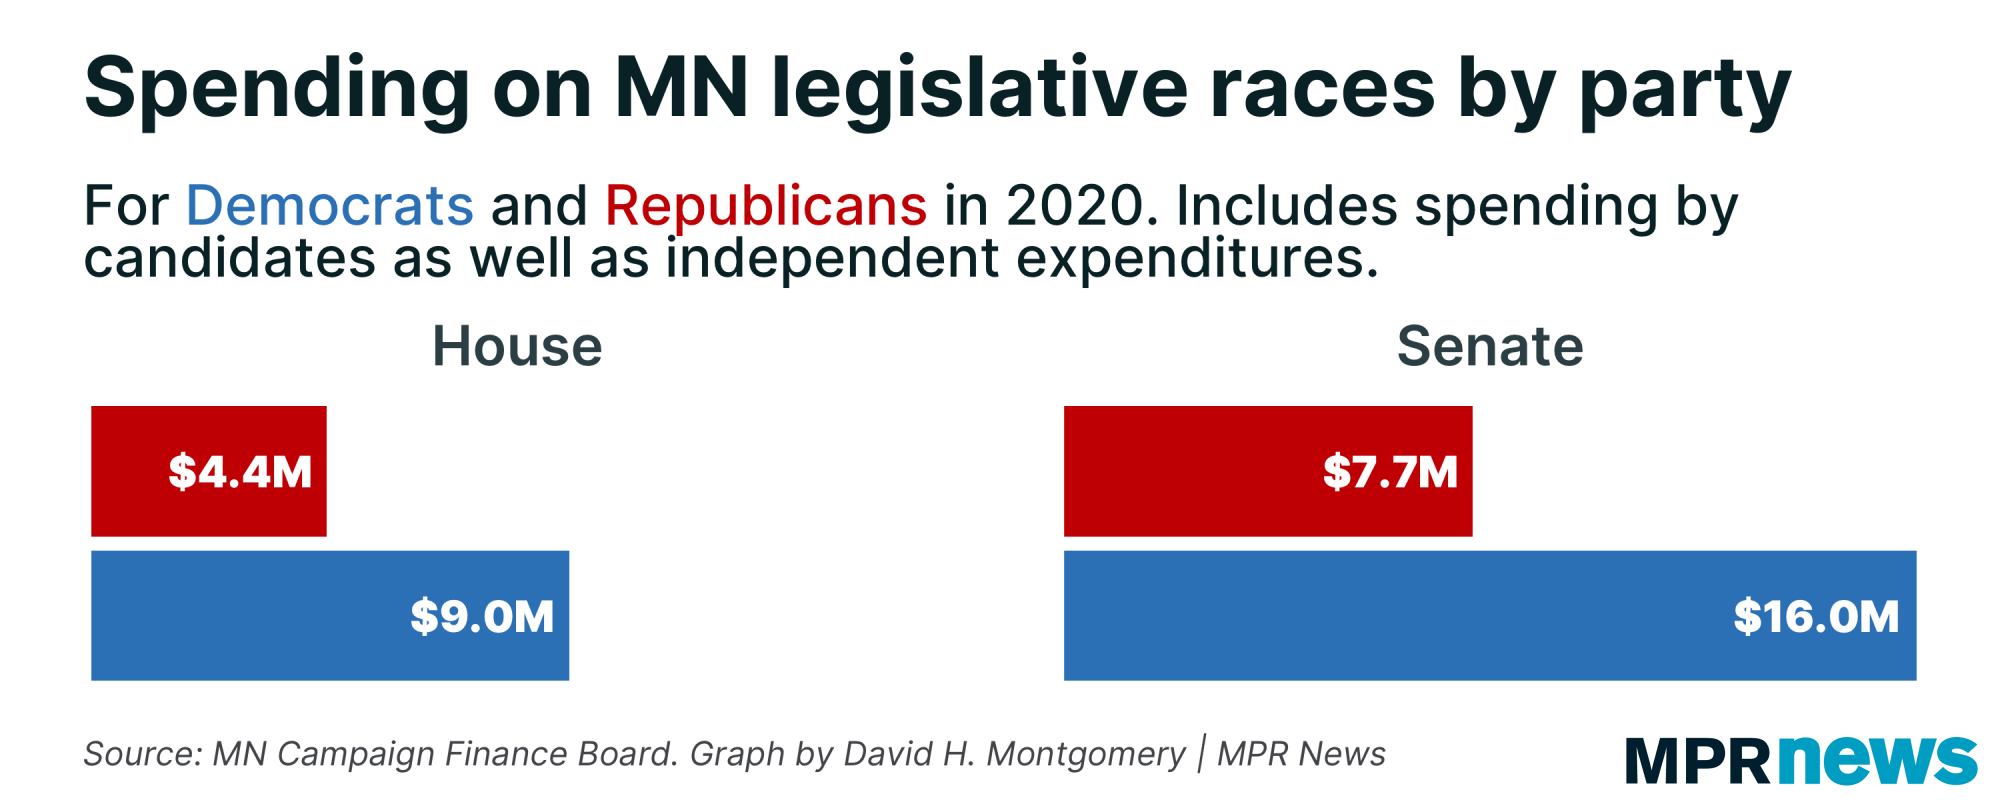 Total spending on 2020 Minnesota legislative races by chamber and party